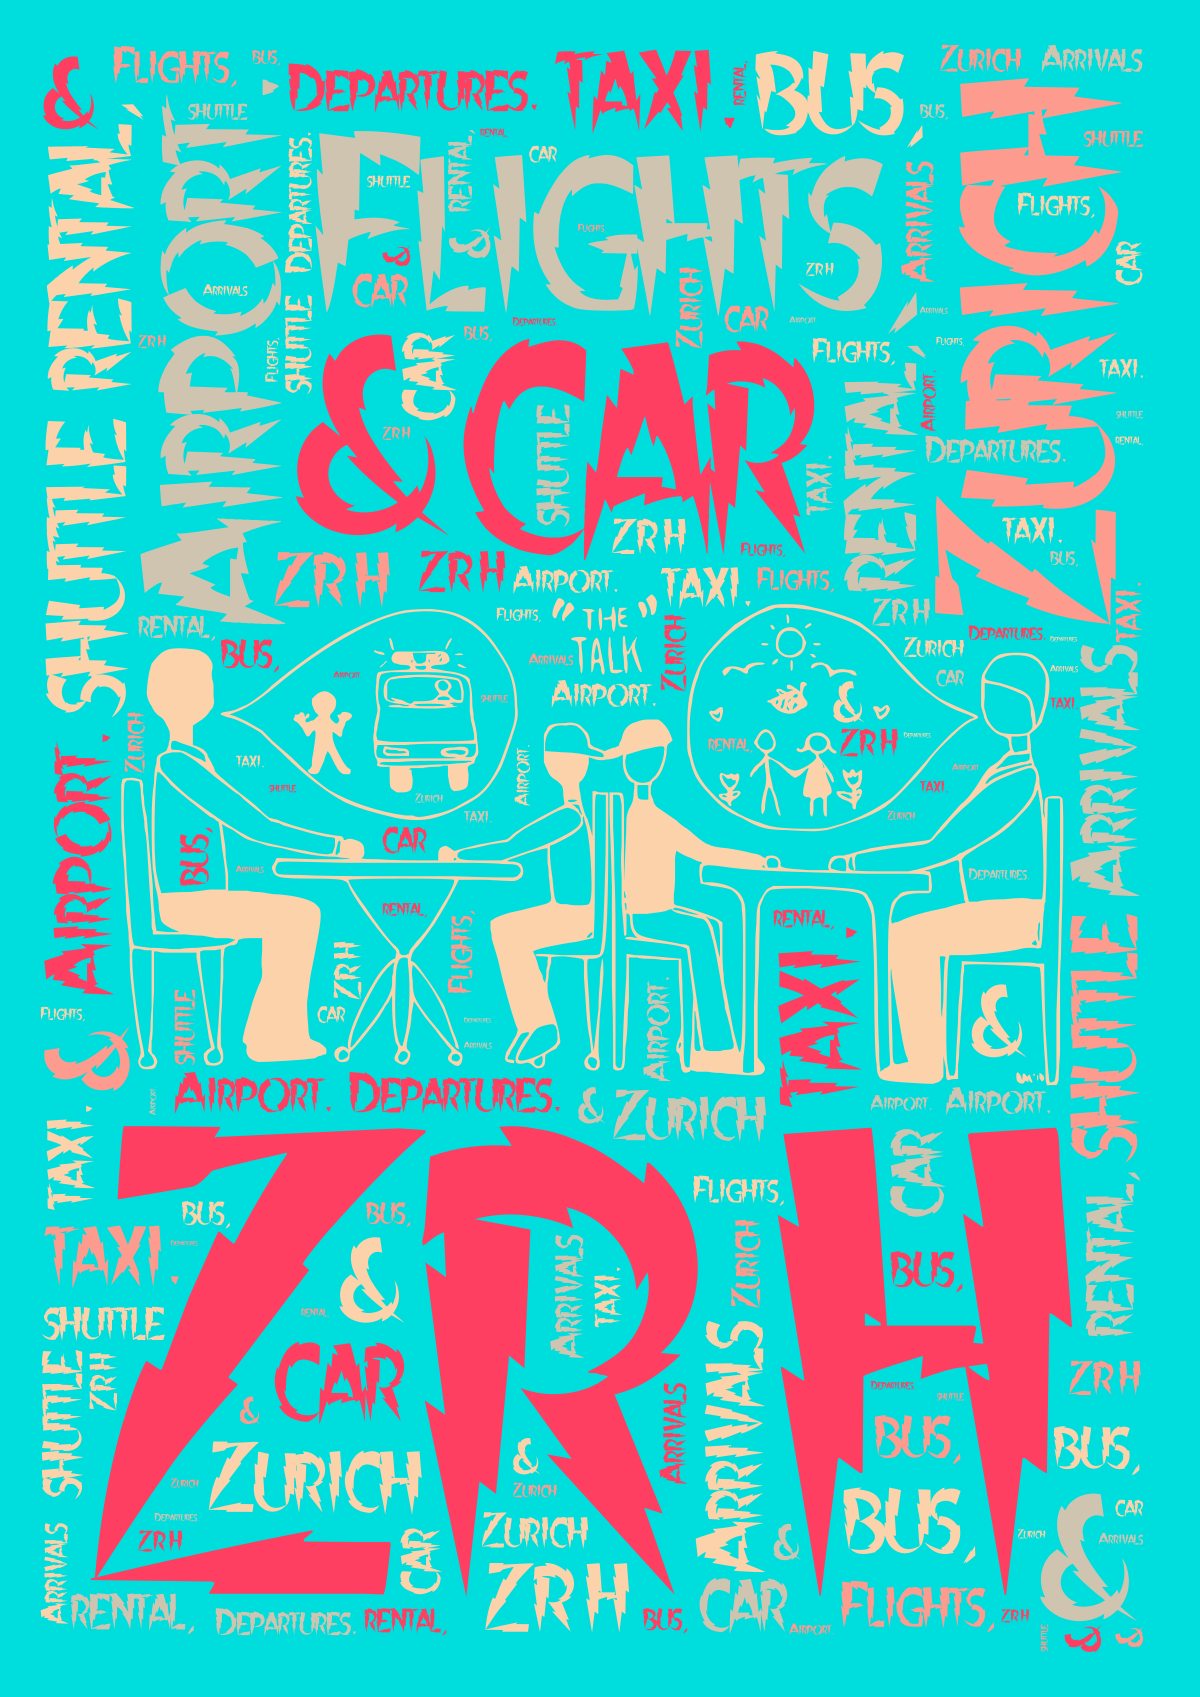 Zurich ZRH Airport. Flights, car rental, shuttle bus, taxi. Arrivals & Departures.